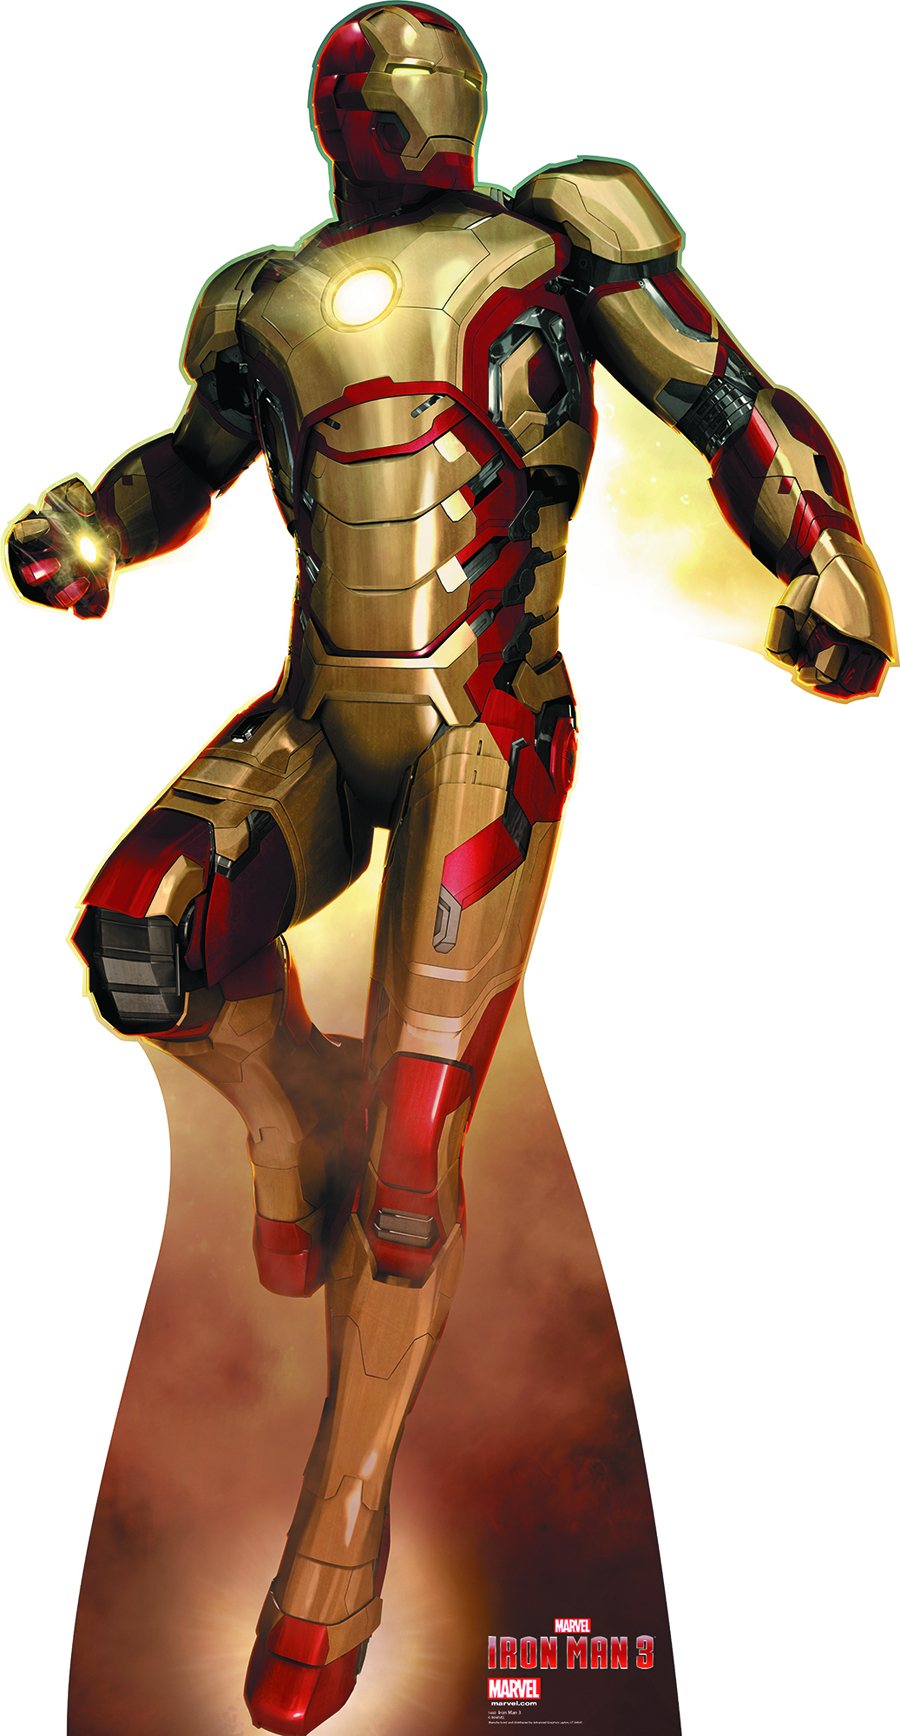 IRON MAN 3 IRON MAN FLYING LIFE-SIZE STANDUP